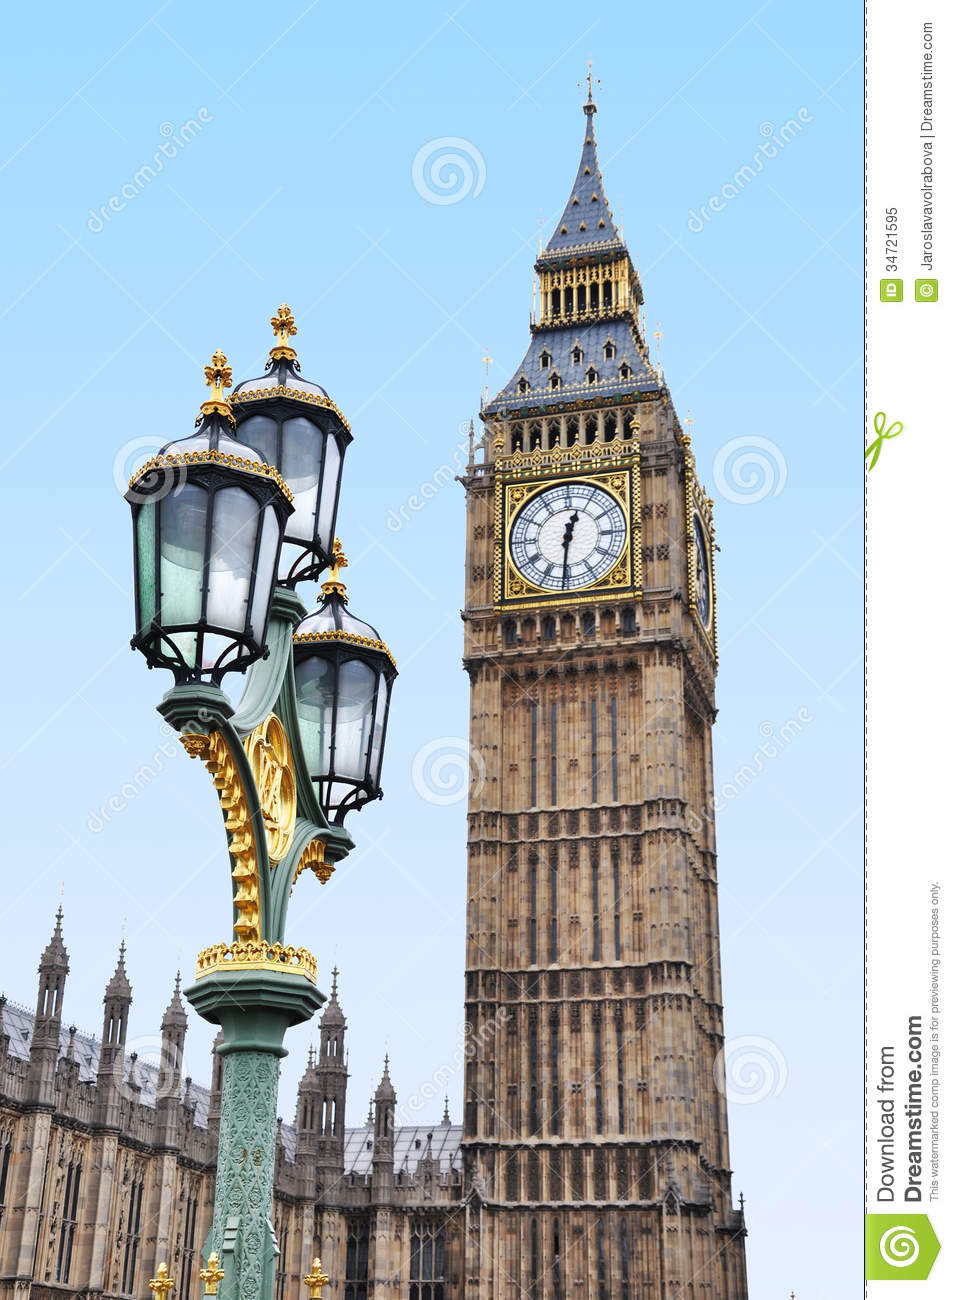 Big Ben With An Ornate Lamp Stock Image - Image: 34721595